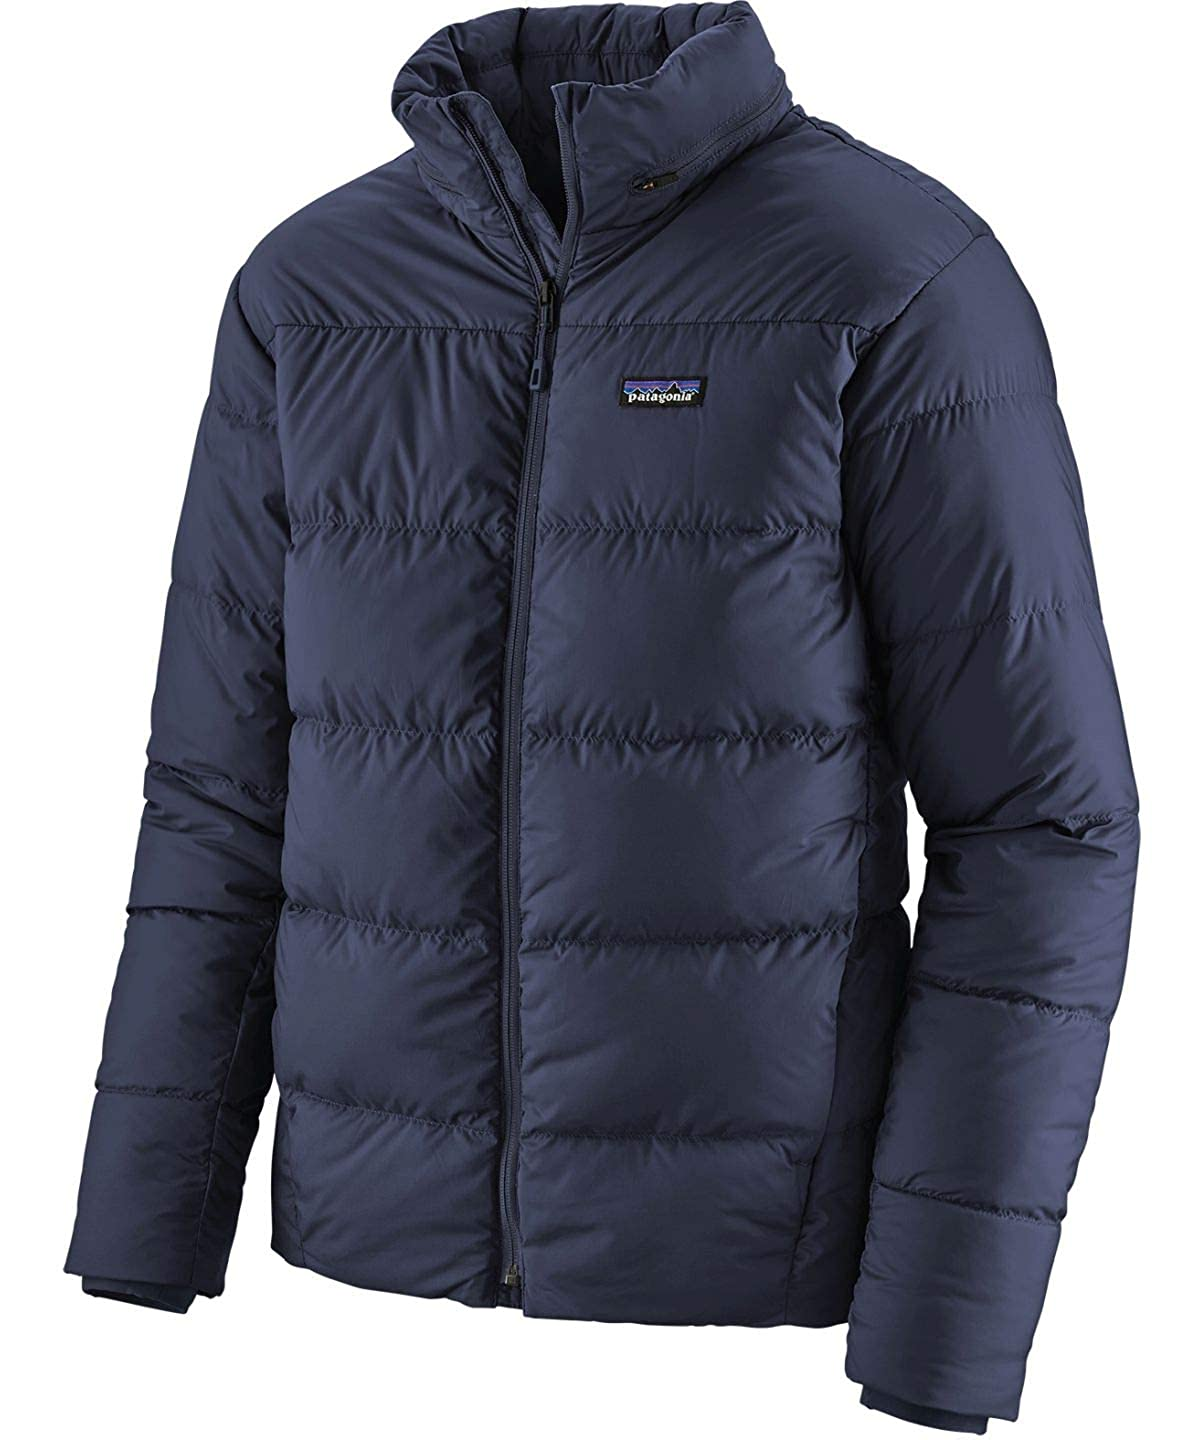 Patagonia M's Silent Down Chaqueta, Hombre